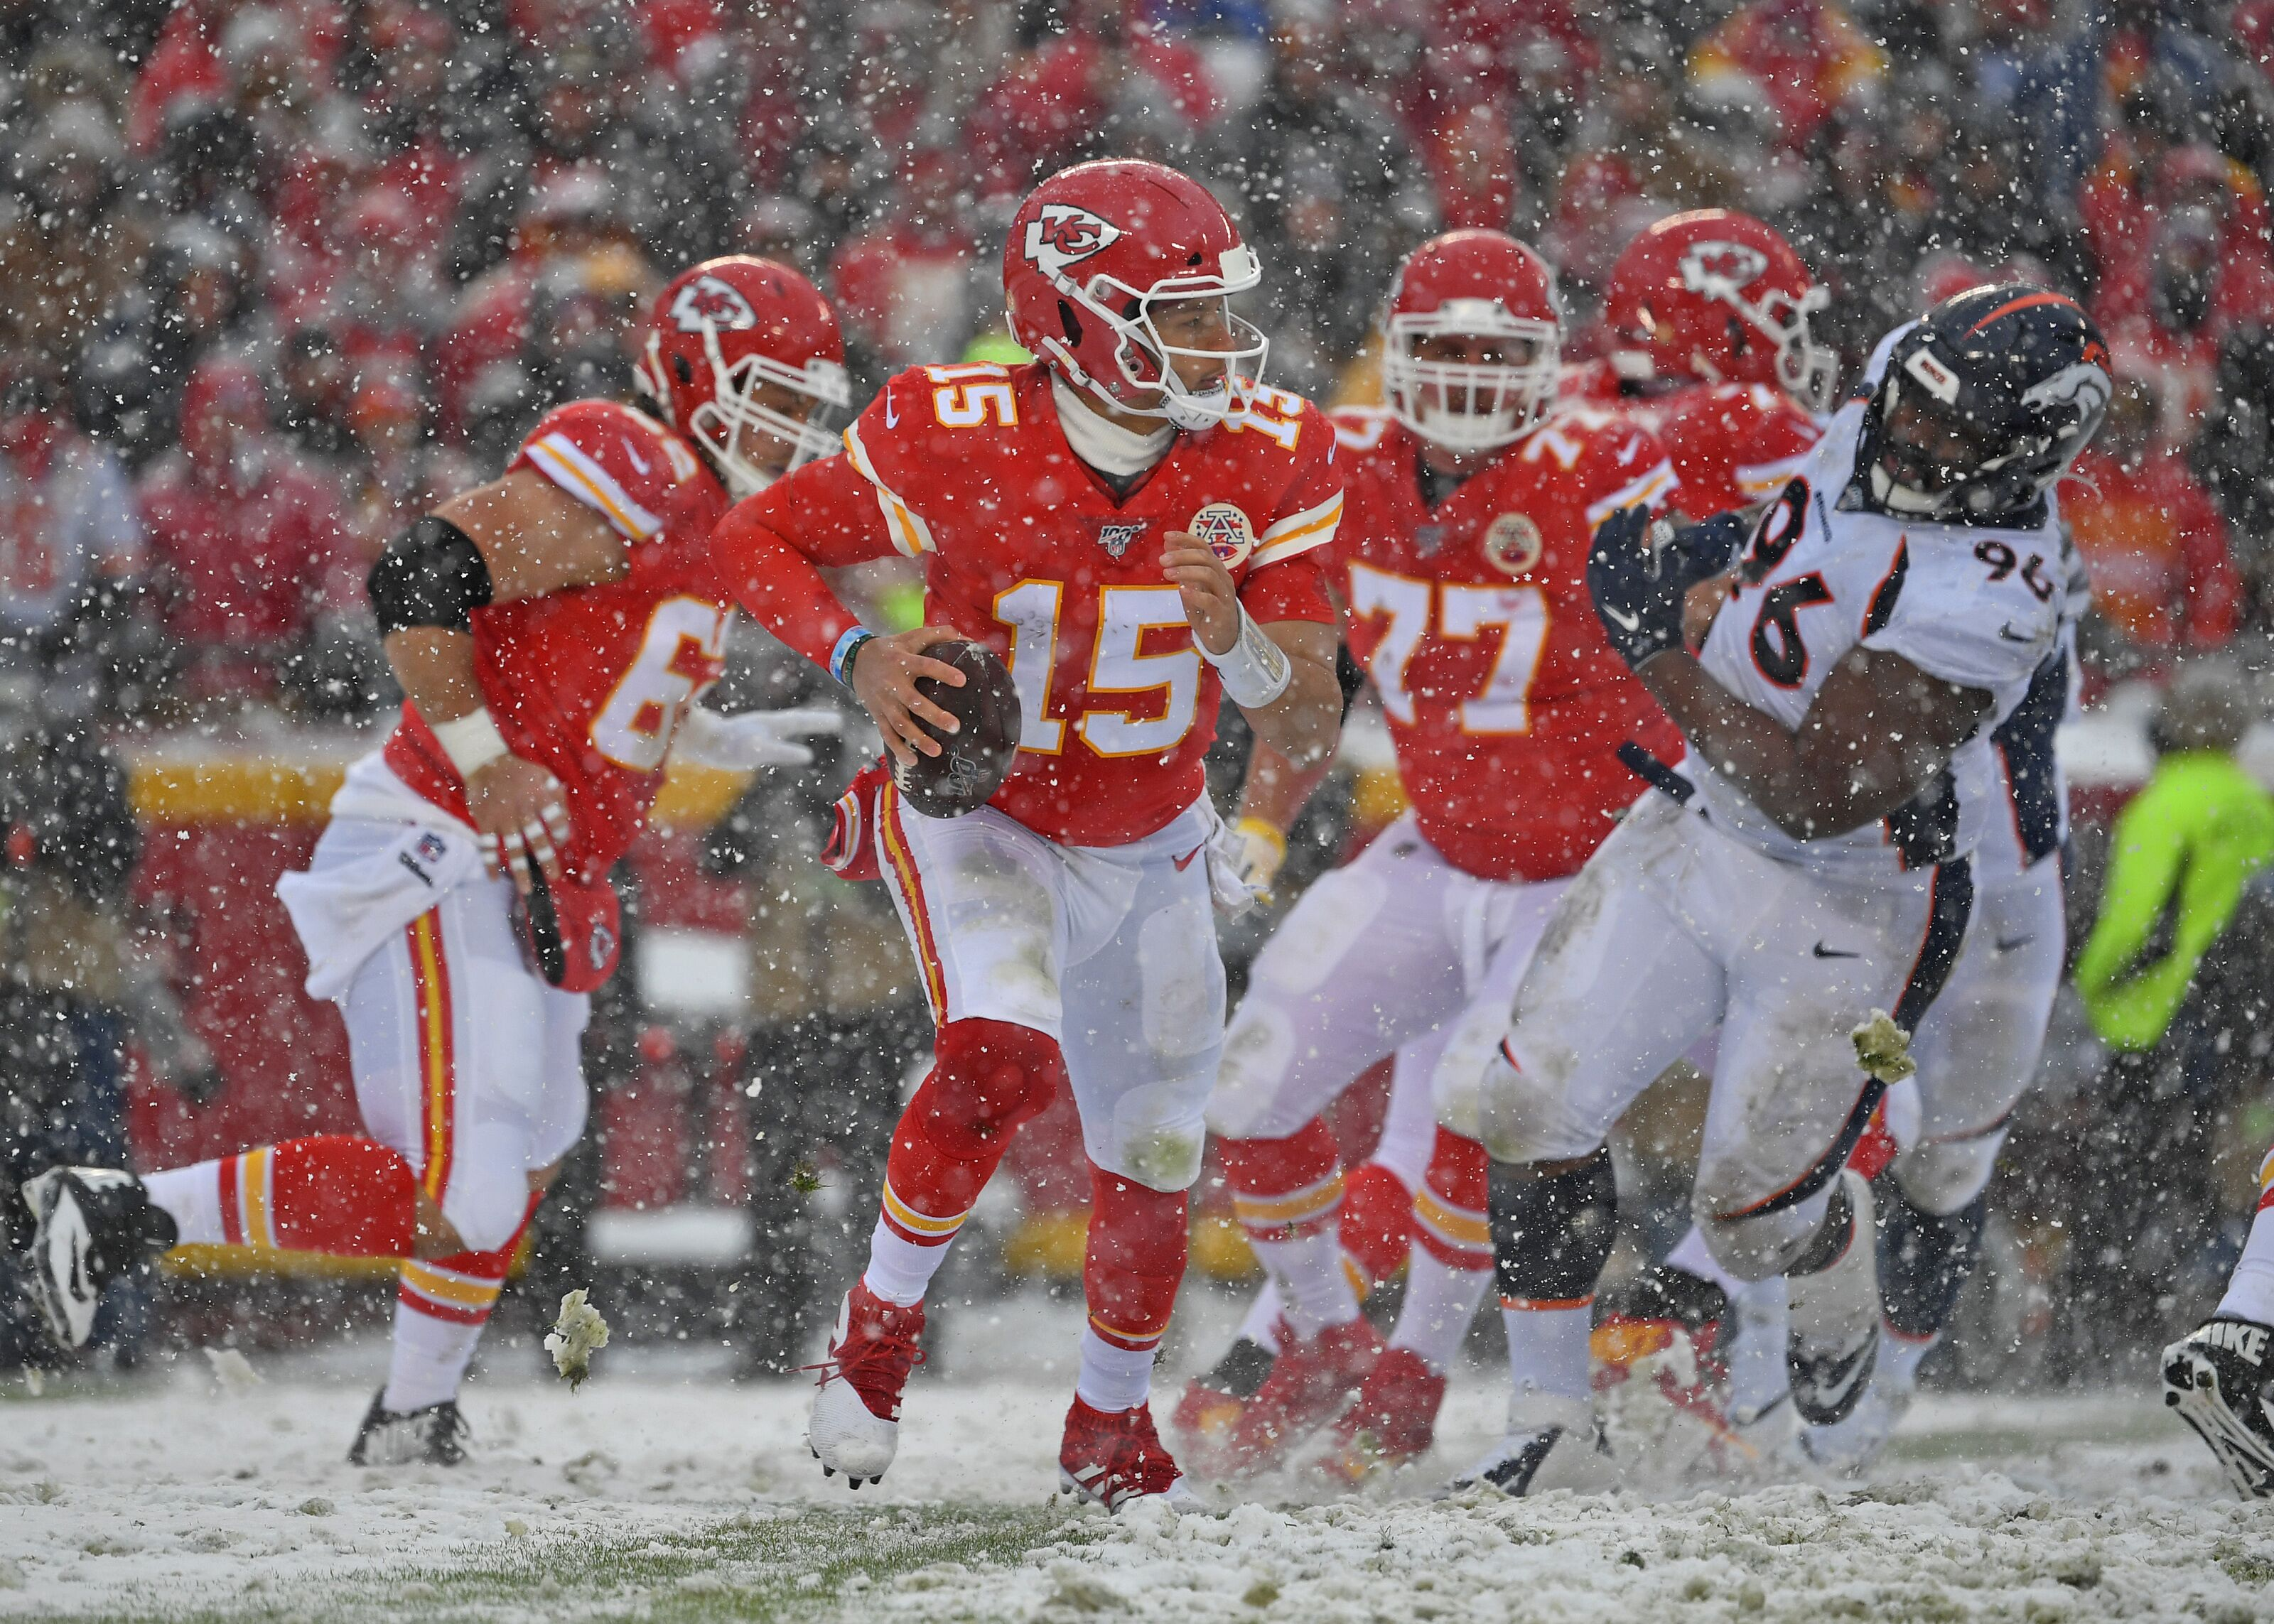 The Kansas City Chiefs look like Super Bowl contenders in win over Broncos